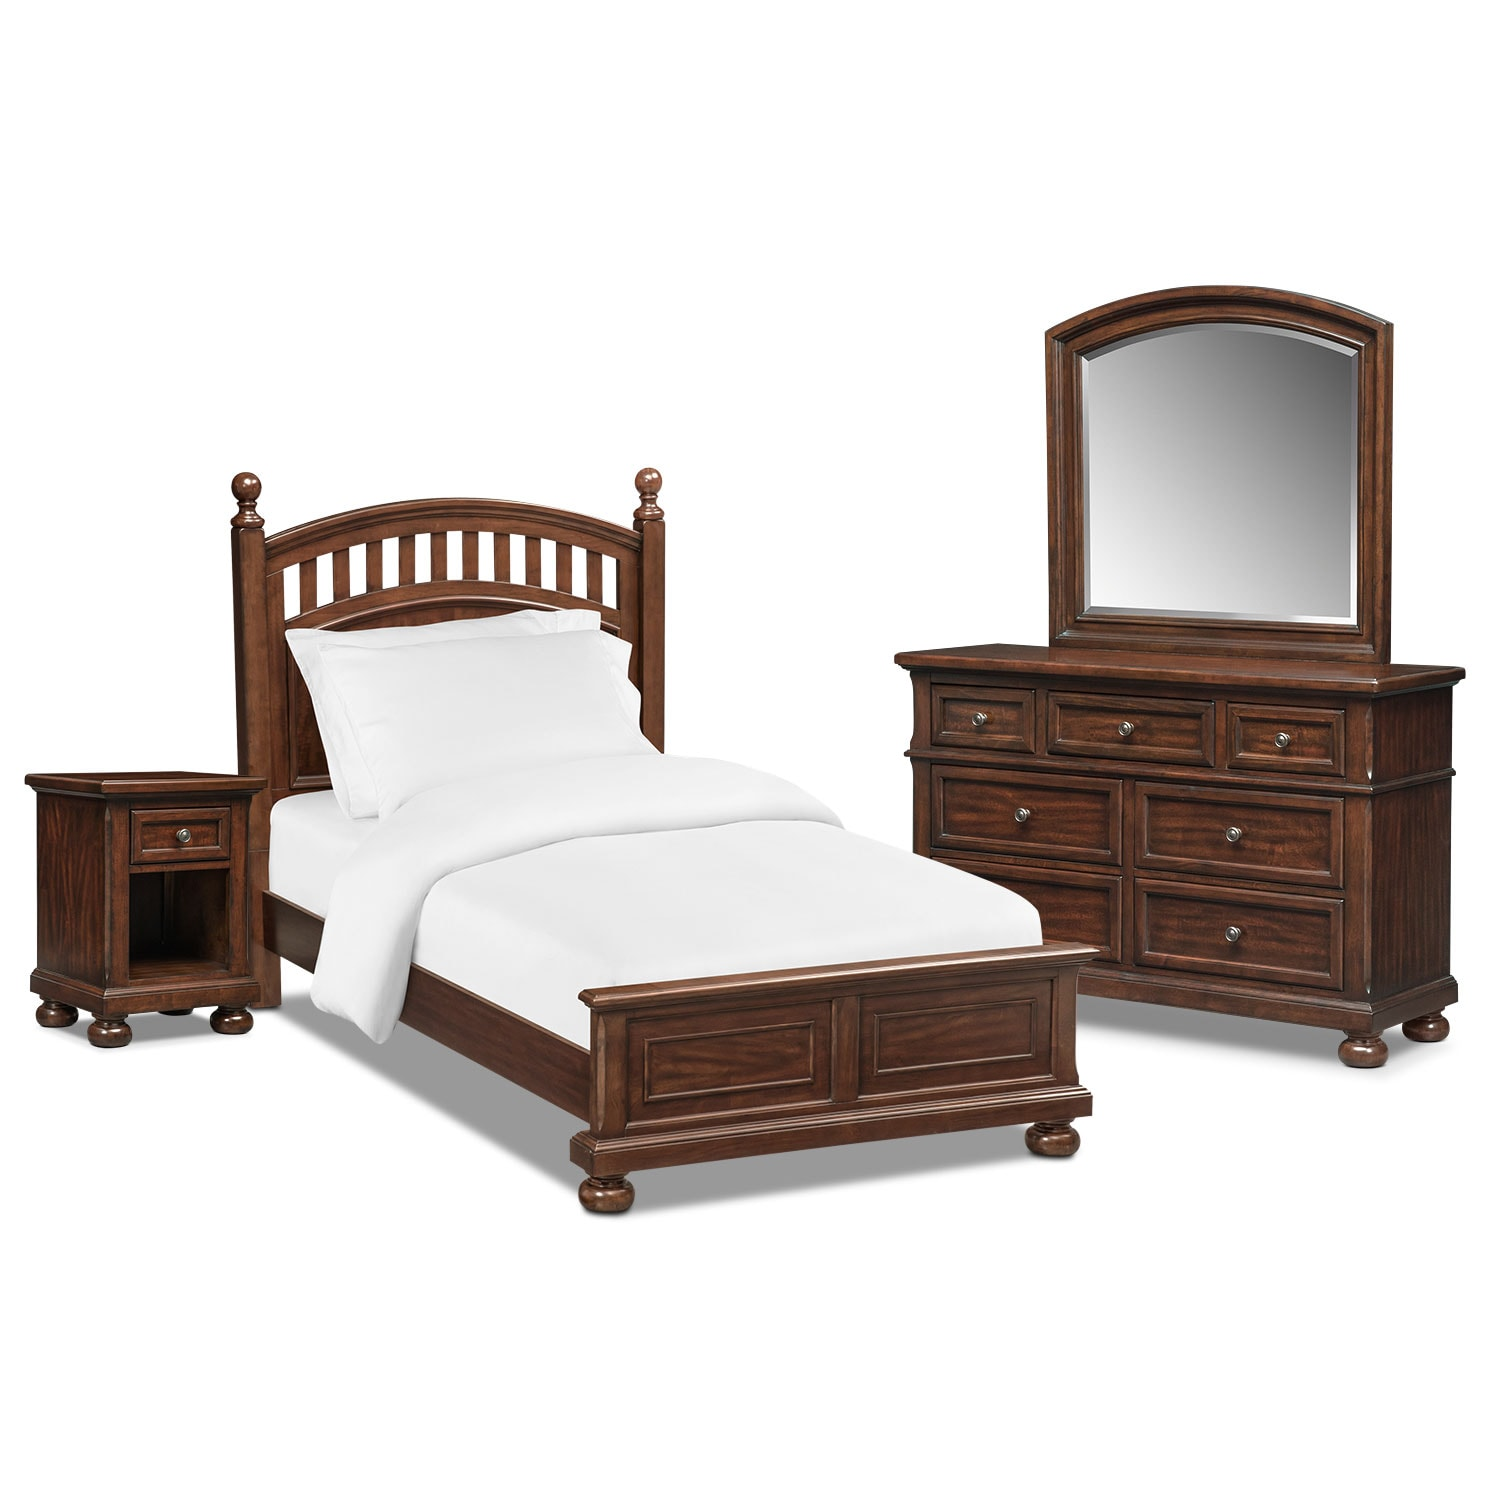 Kids Furniture - Hanover Youth 6-Piece Poster Bedroom Set with Nightstand, Dresser and Mirror